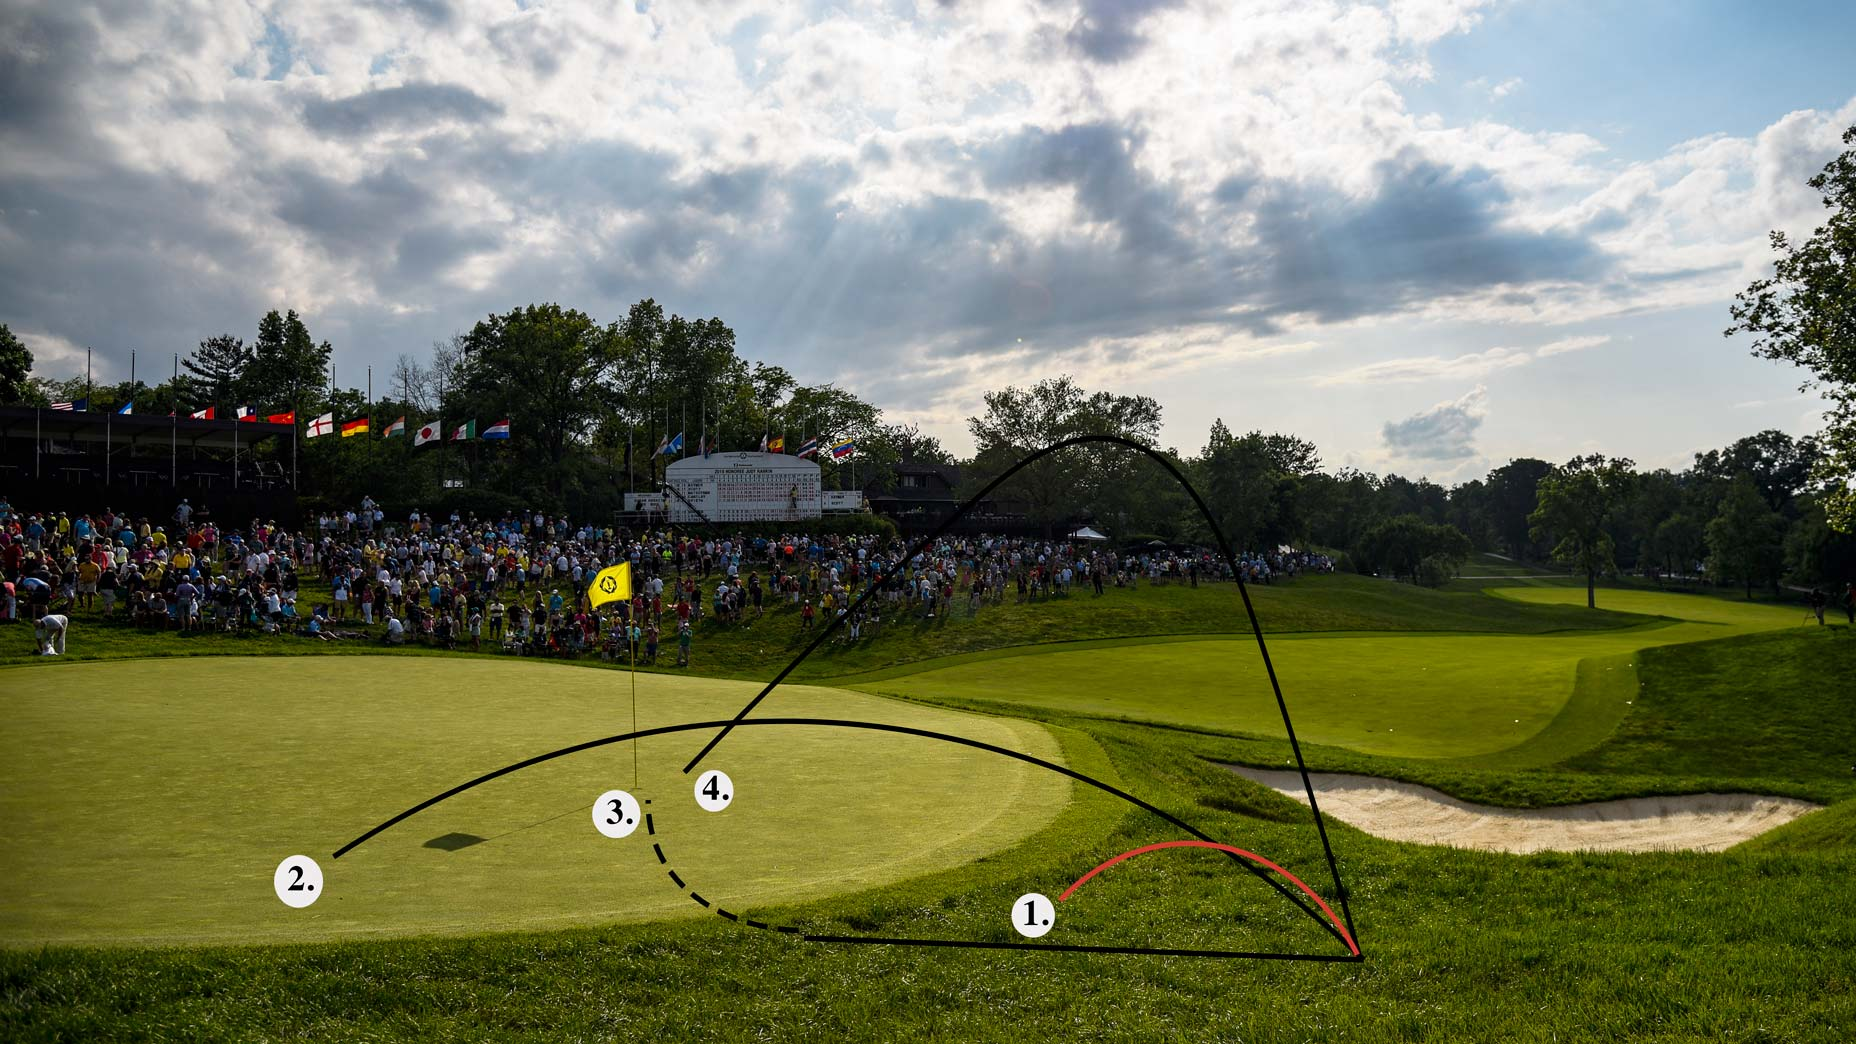 Here are 4 options when dealing with a short-sided chip shot